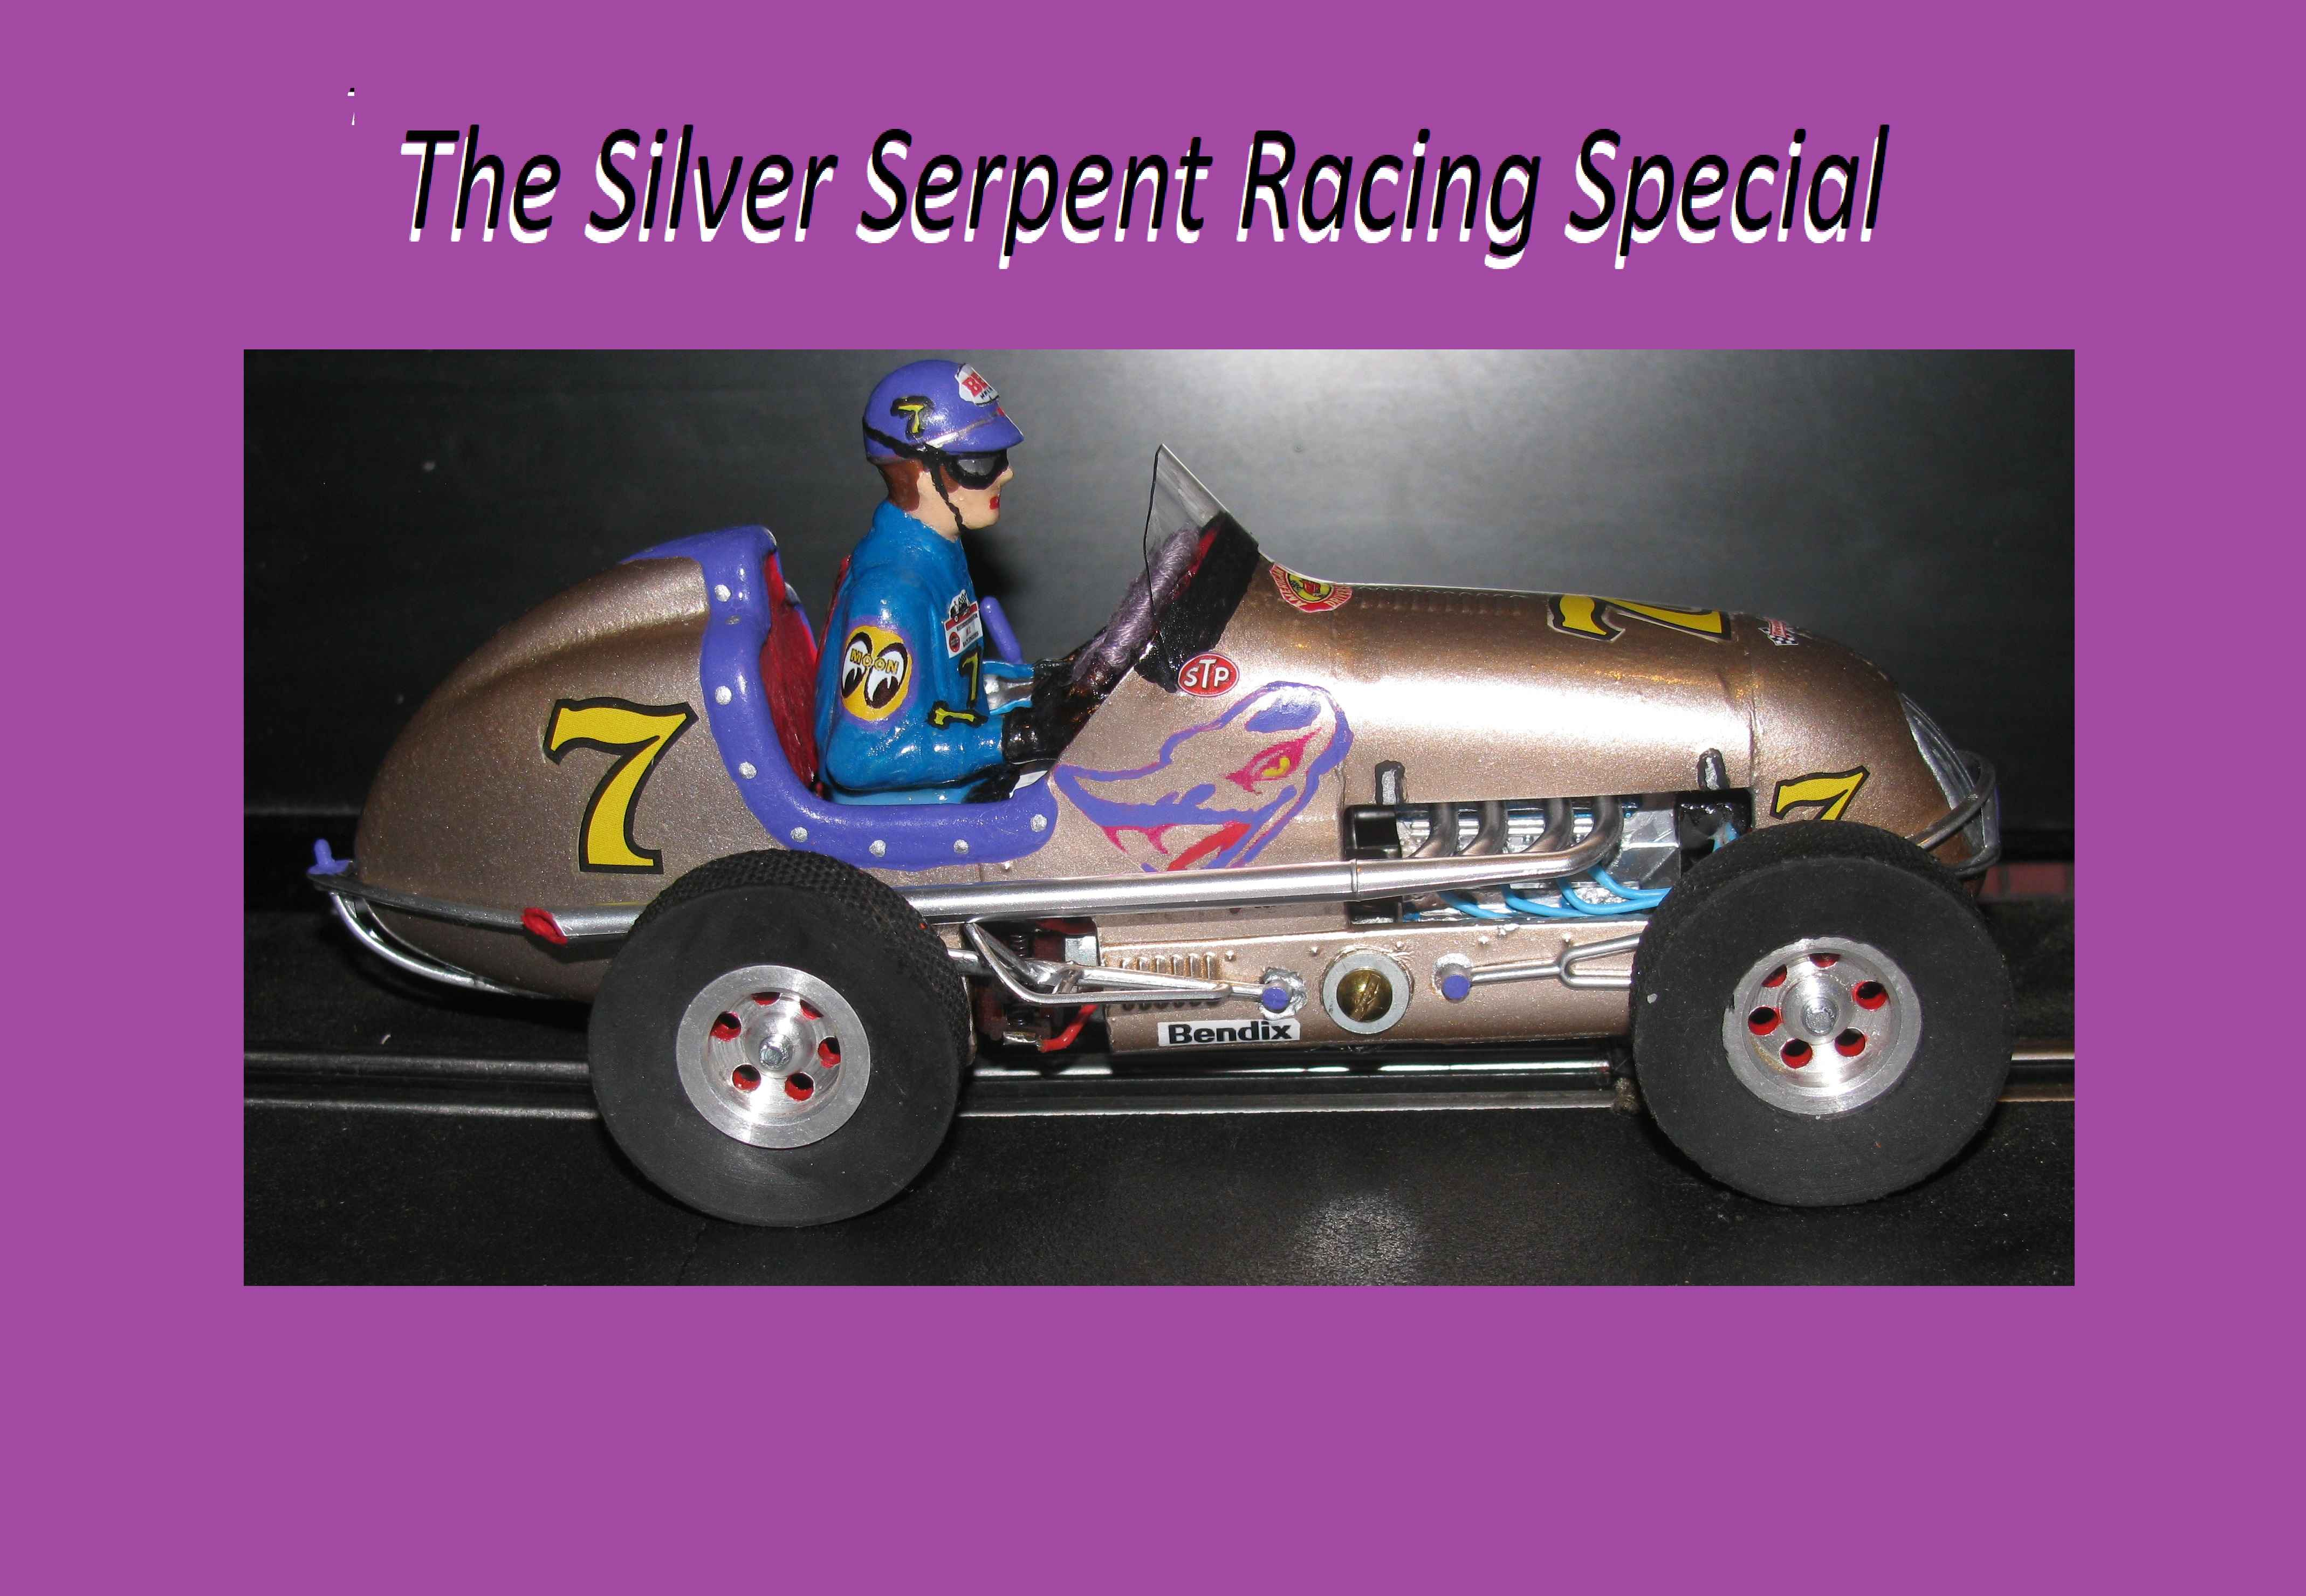 *SOLD* * SPECIAL WEEKEND SALE * Midget Racer Slot Car The Silver Serpent Monogram Racing Special #7